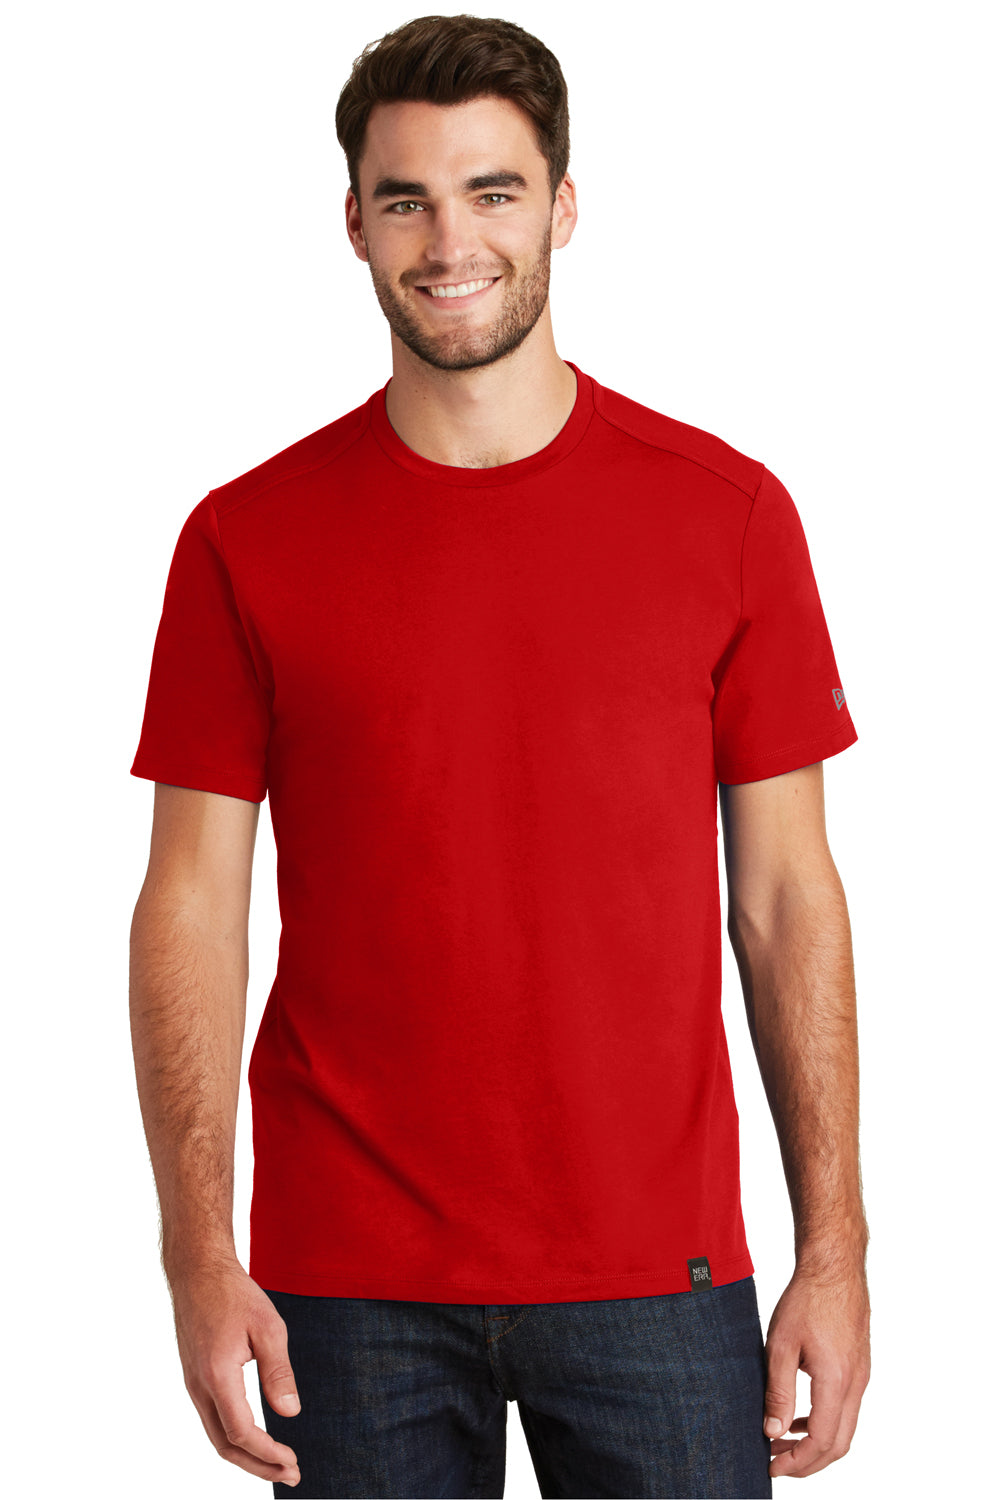 New Era NEA100 Mens Heritage Short Sleeve Crewneck T-Shirt Red Front